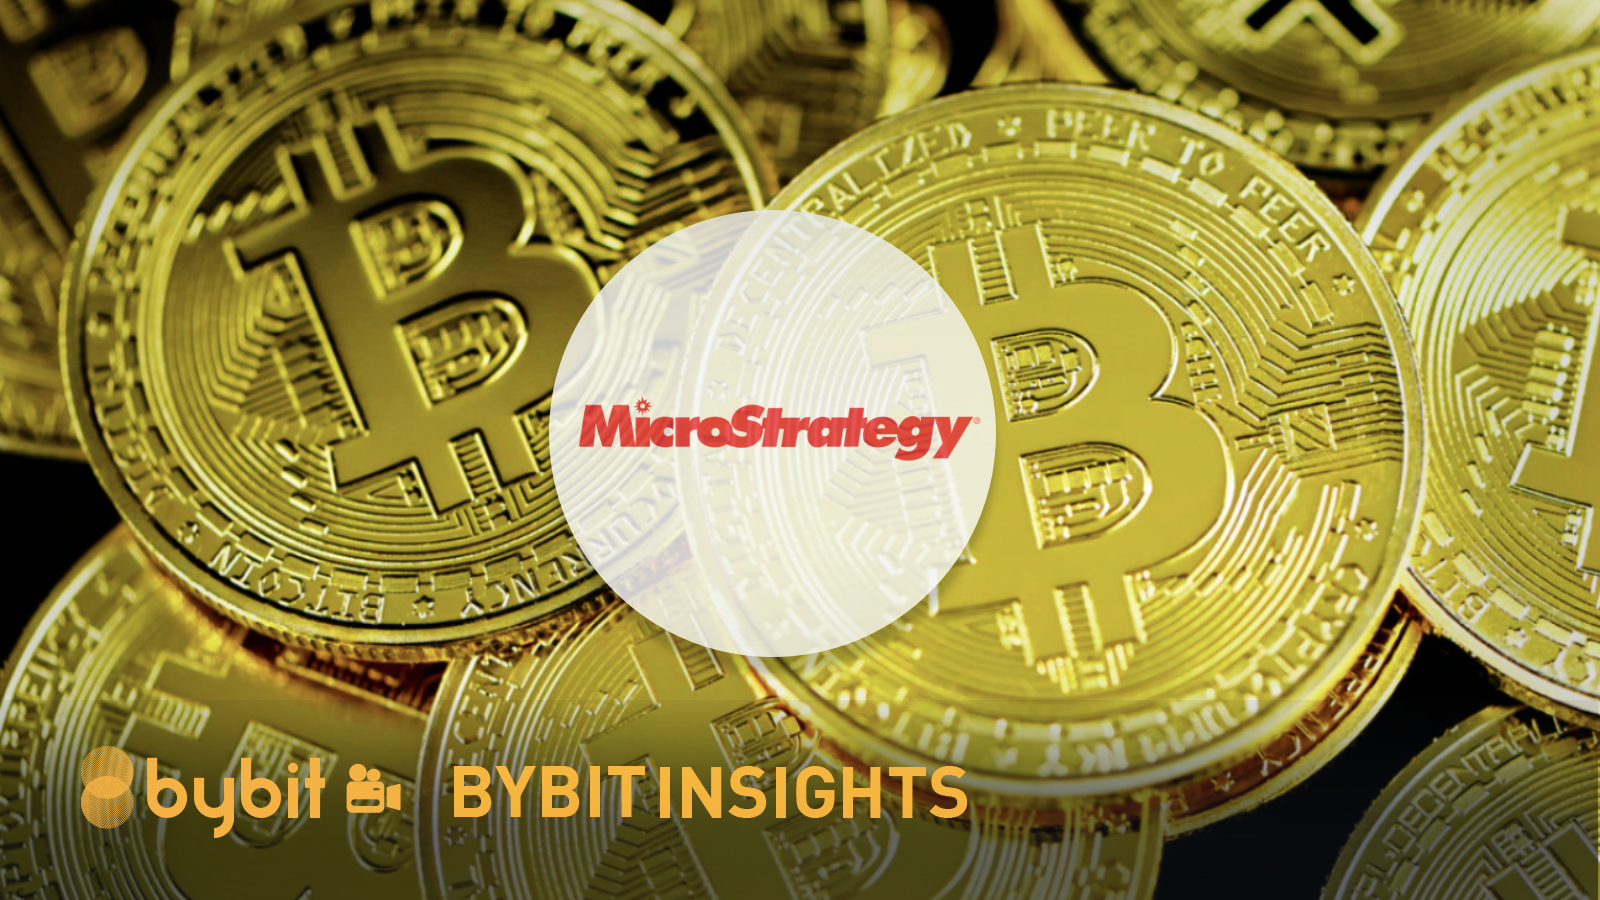 Bybit Insights - ms